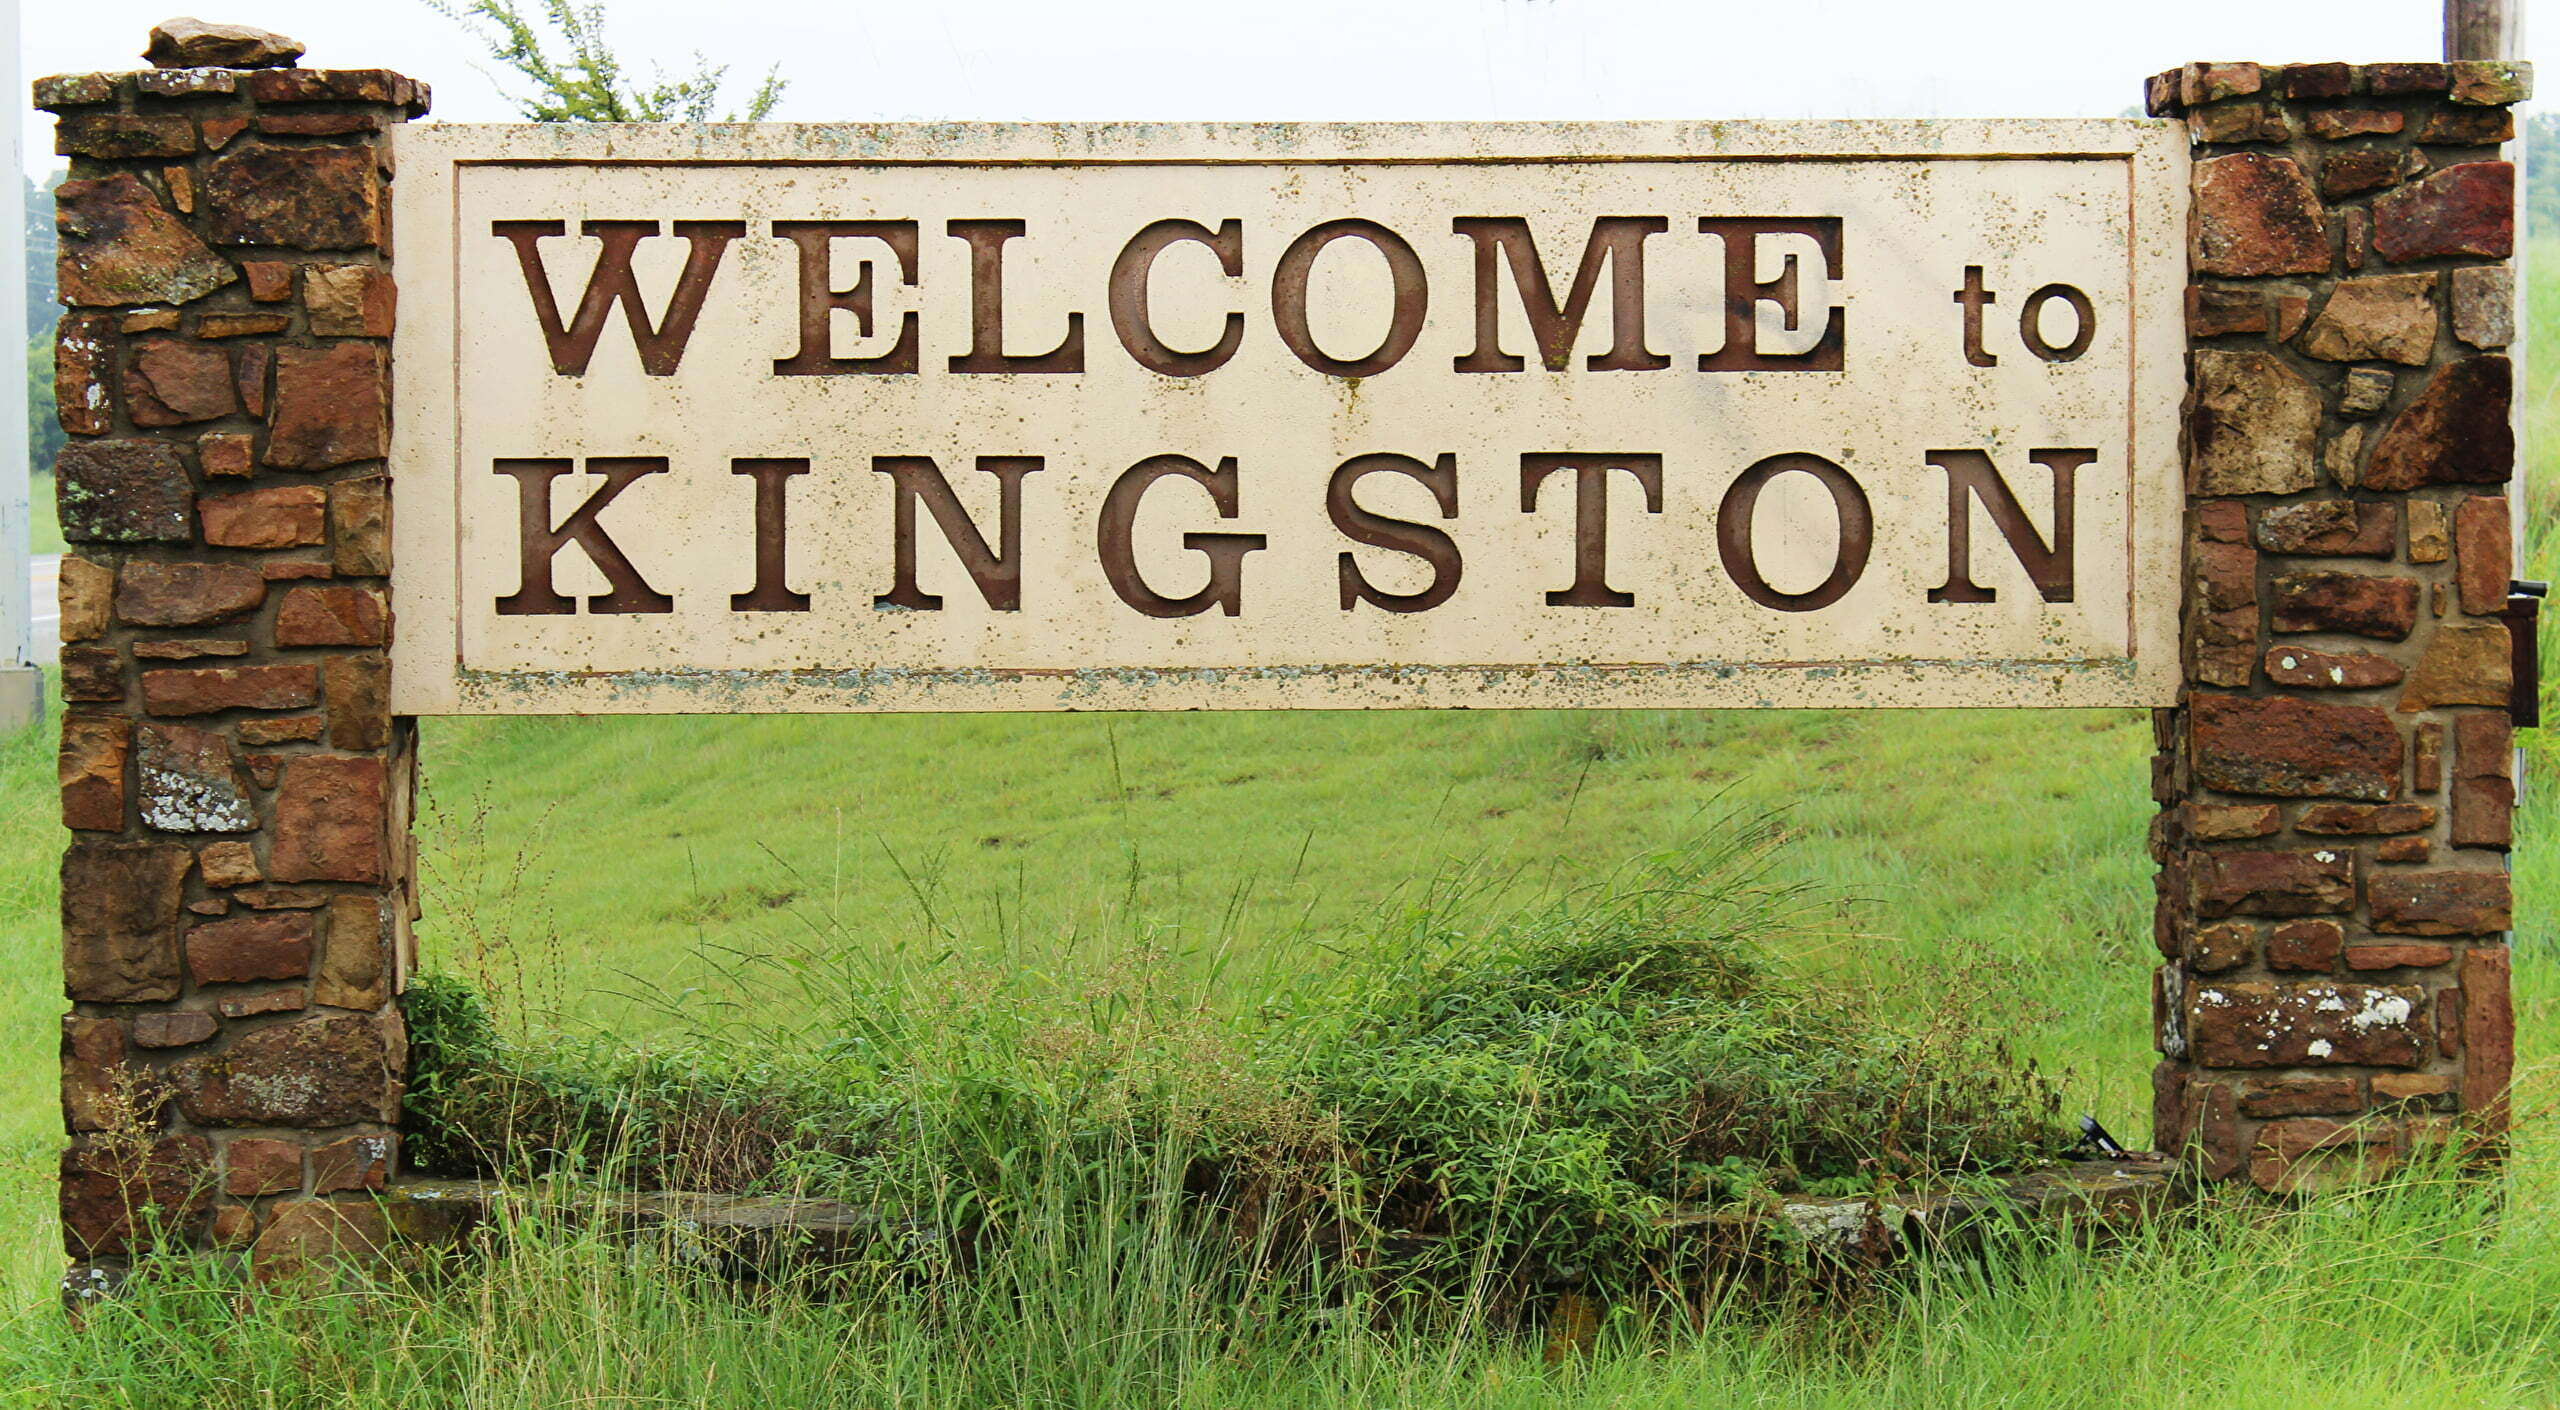 Welcome sign for Kingston, Oklahoma